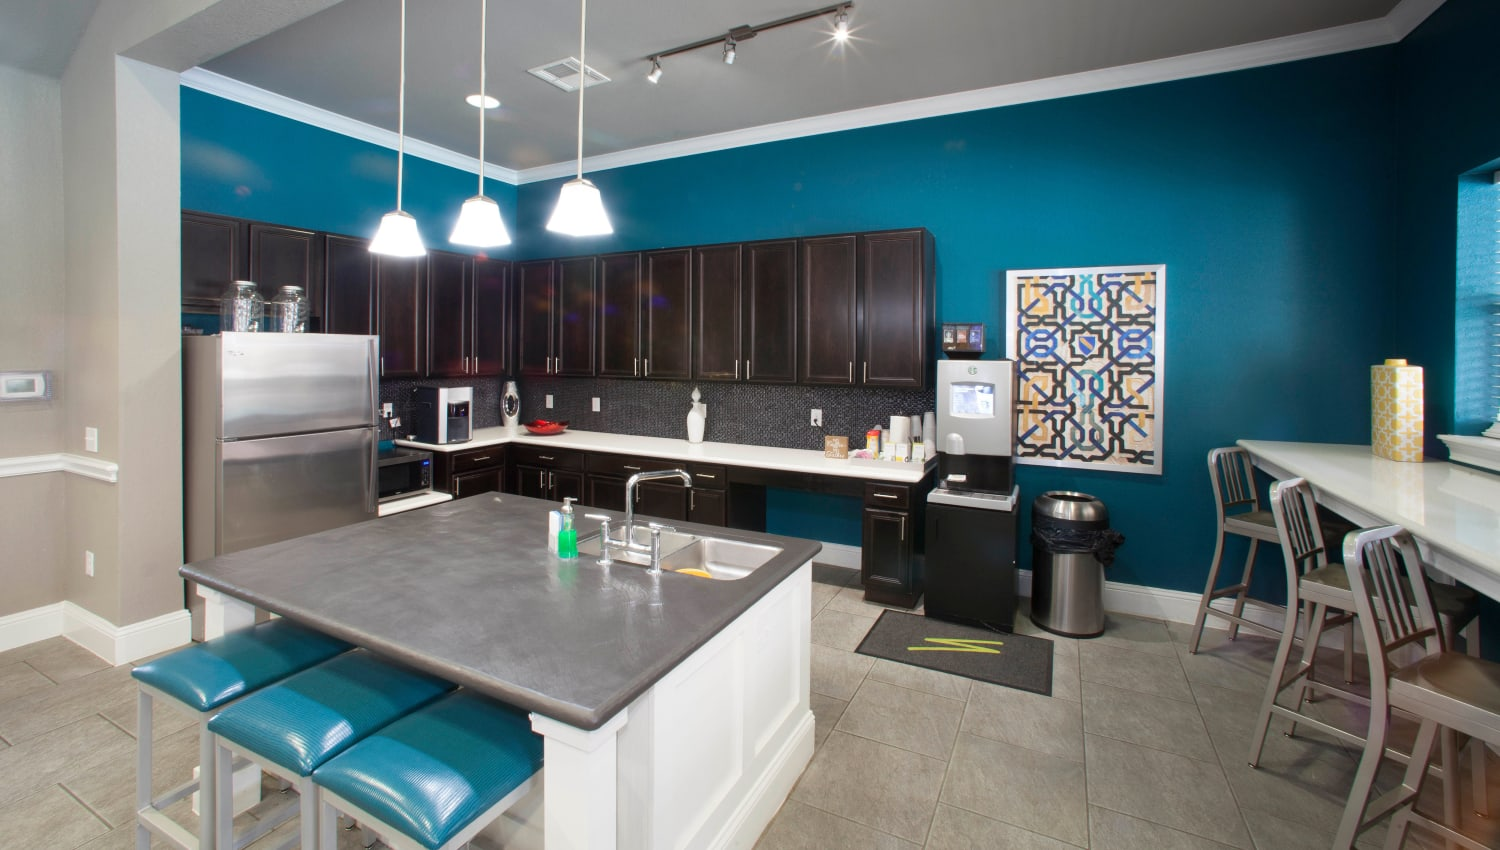 Demonstration kitchen in the clubhouse at Olympus Katy Ranch in Katy, Texas